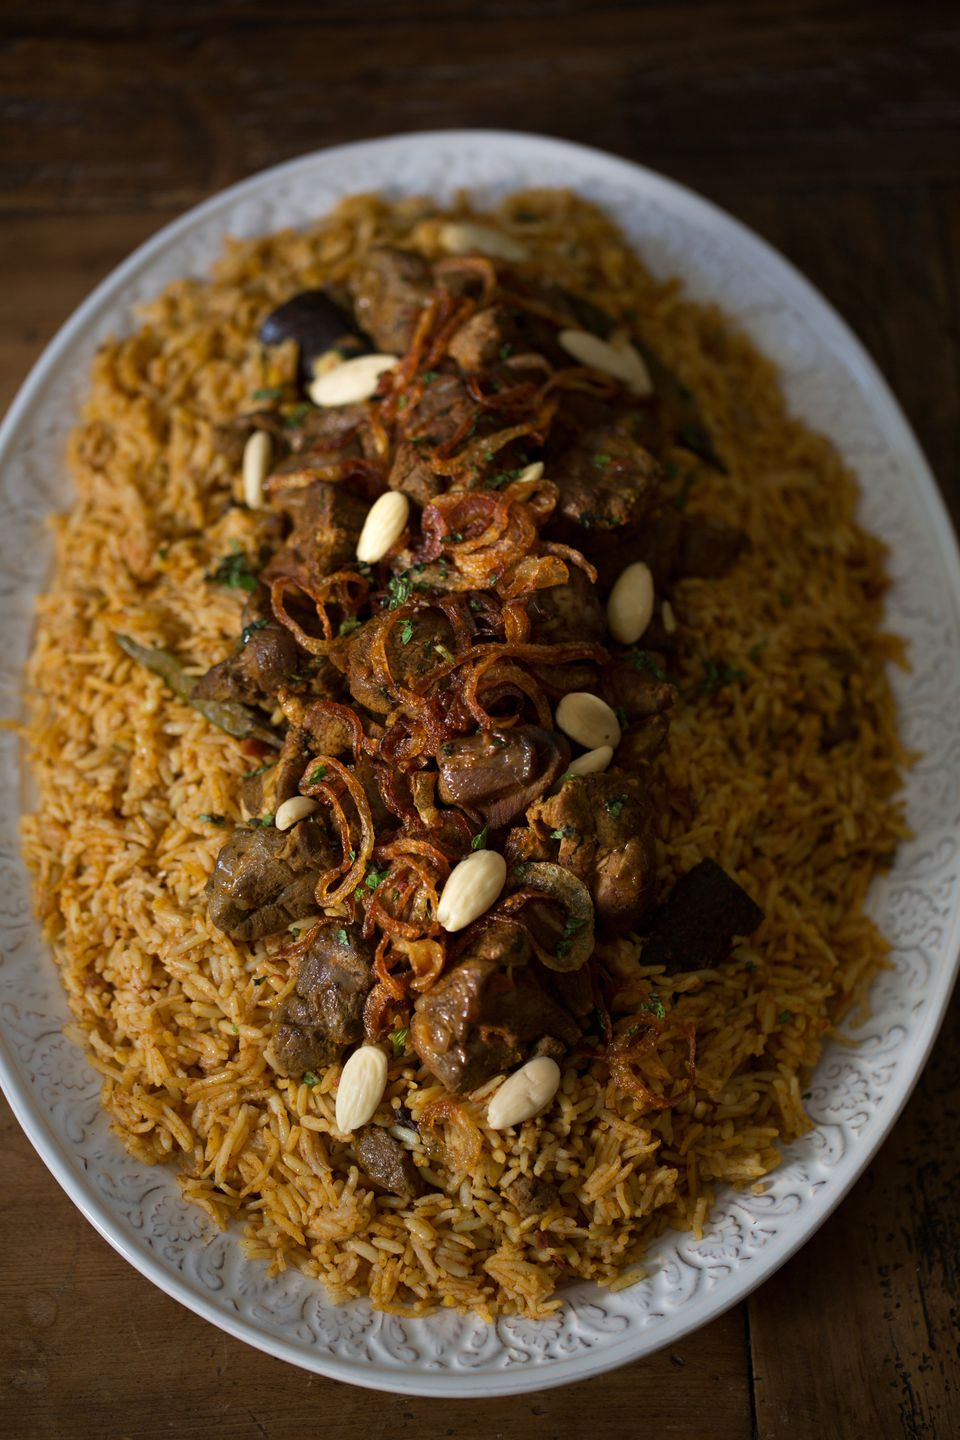 lamb and almonds on bed of rice